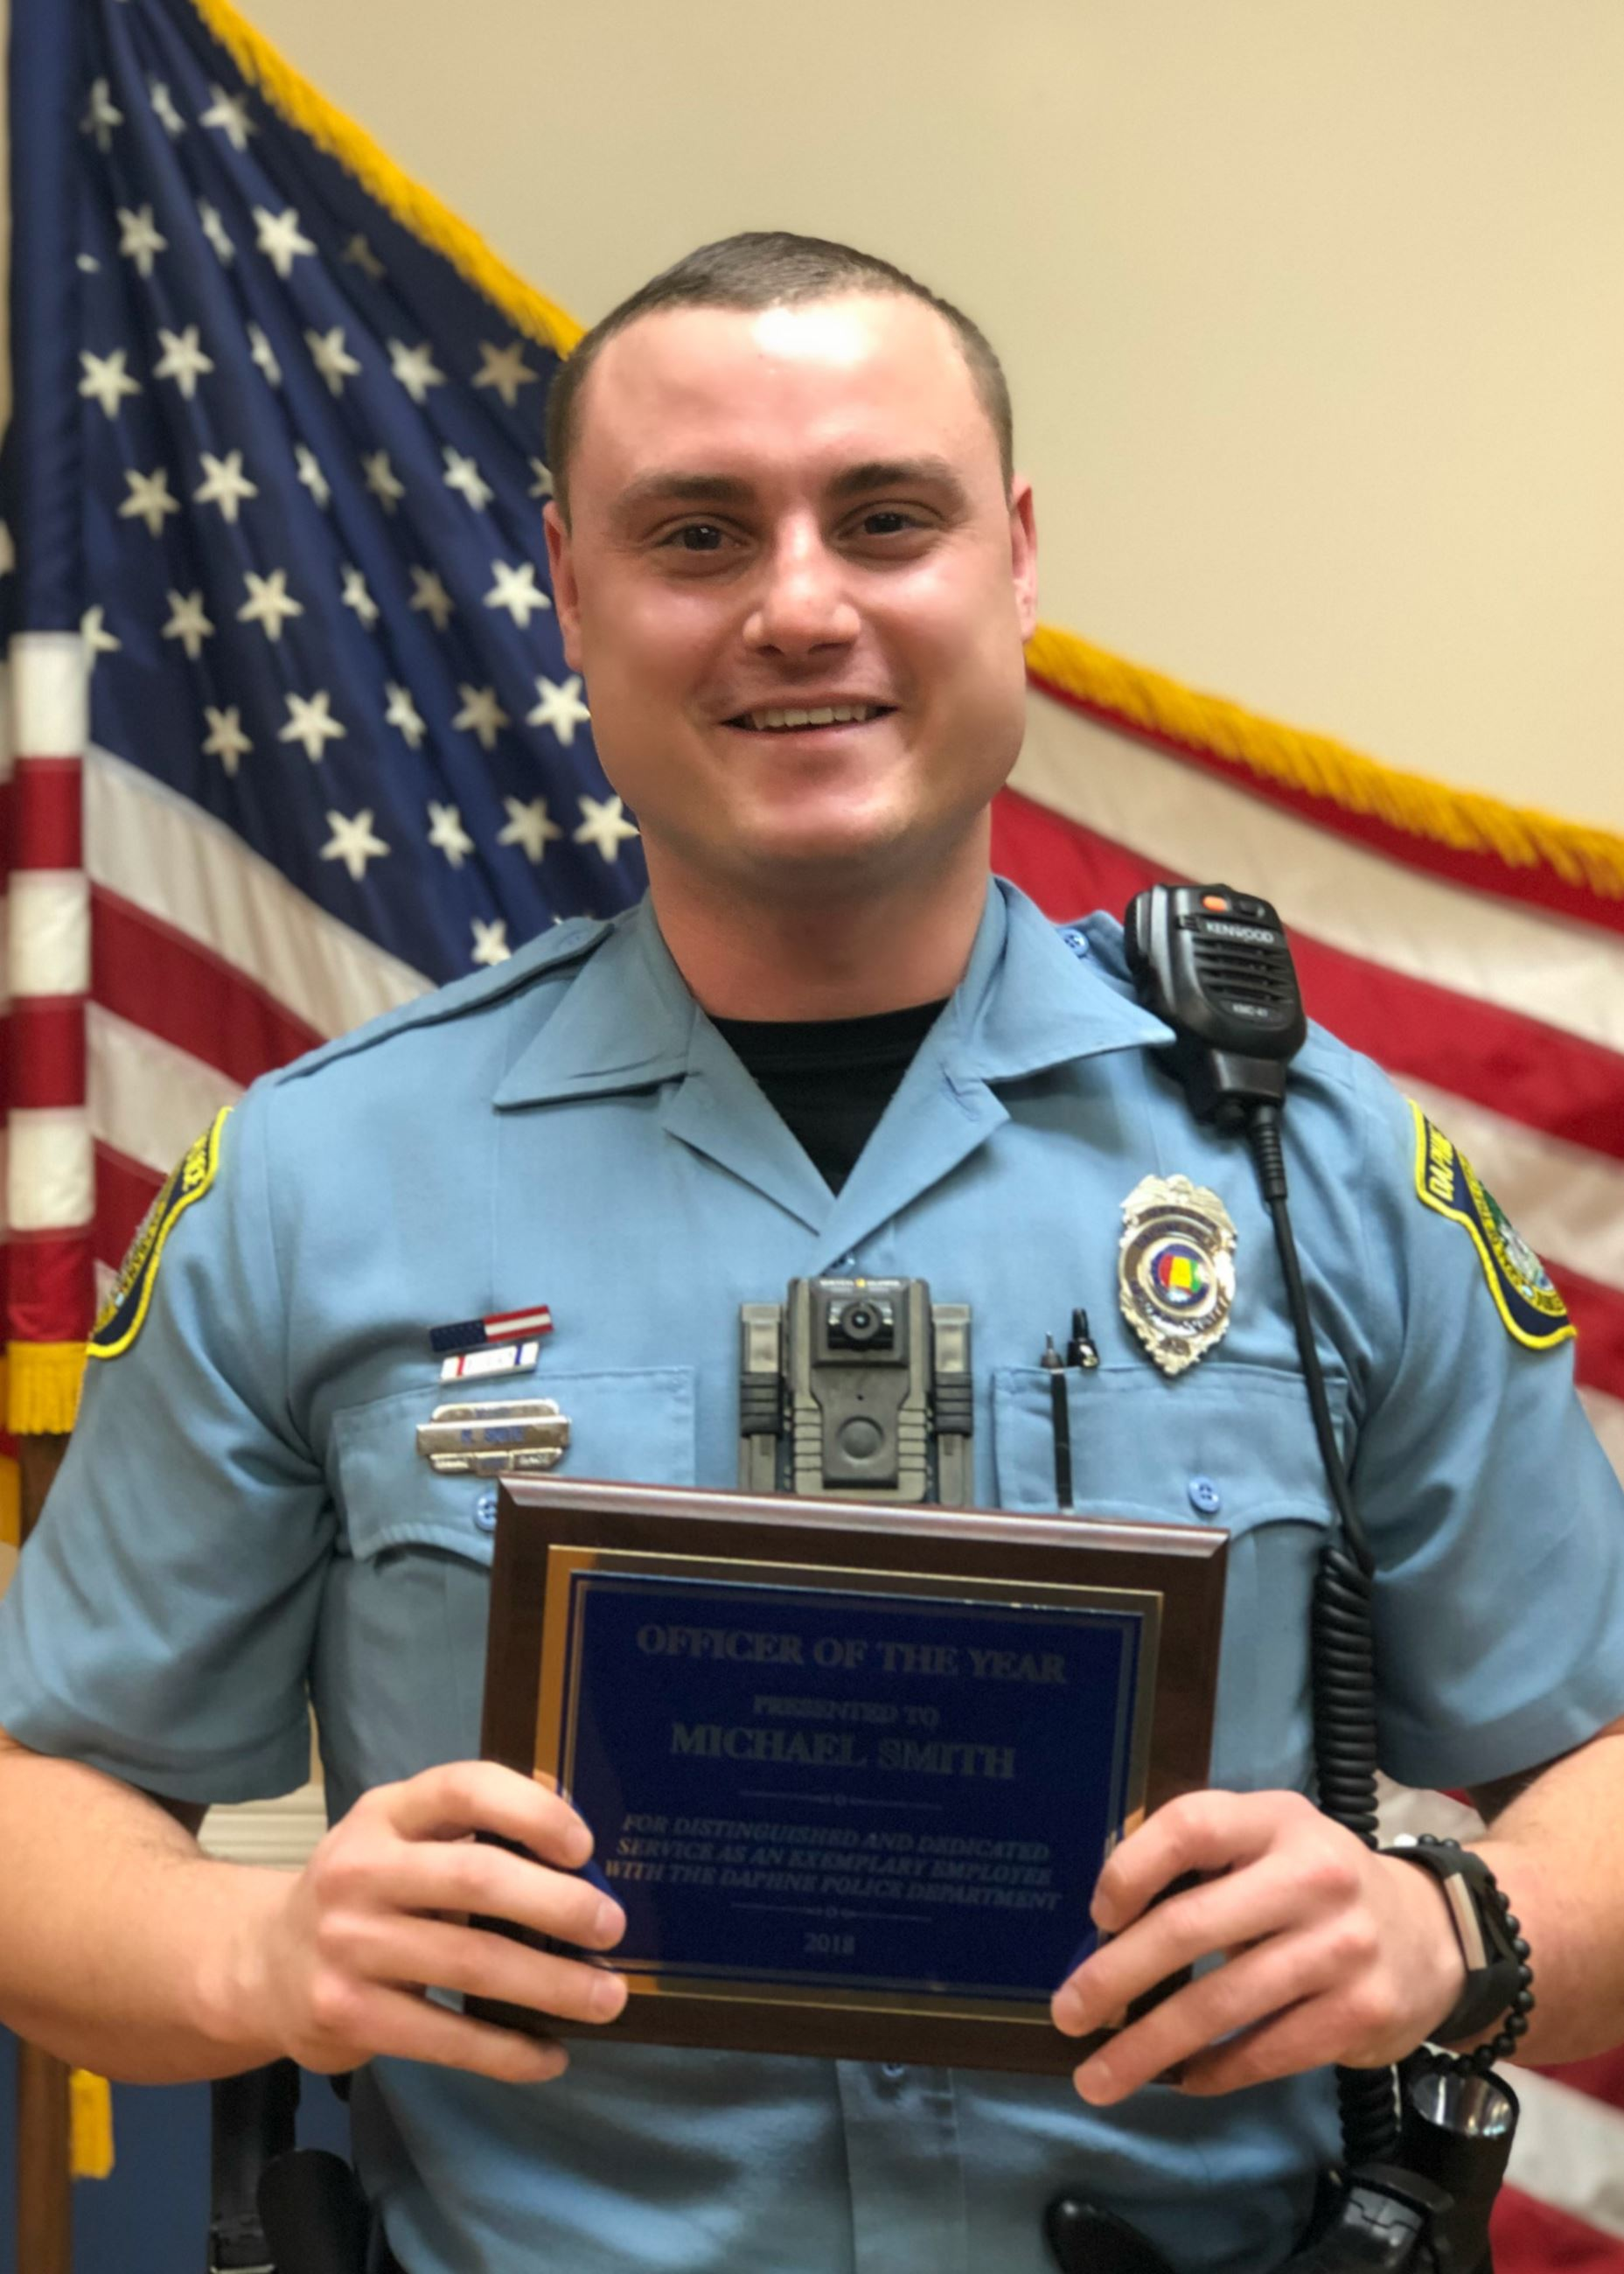 Michael Smith - Officer of the Year 2018